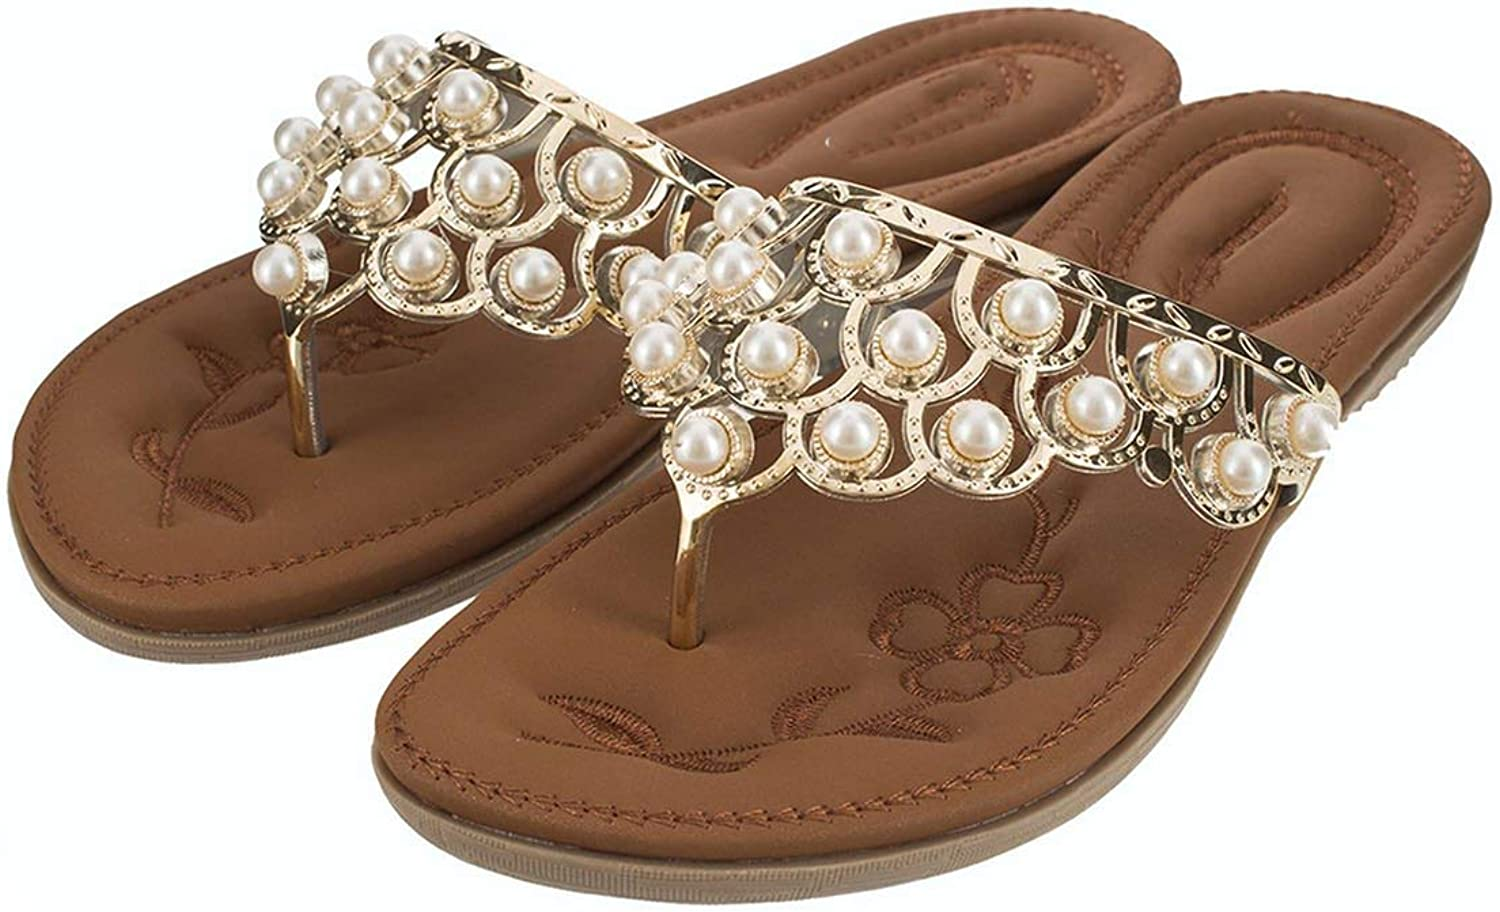 Four- Solid String Bead Outside Women Slippers Classics Leisure Flat Flip Flops Open Toe Soft shoes